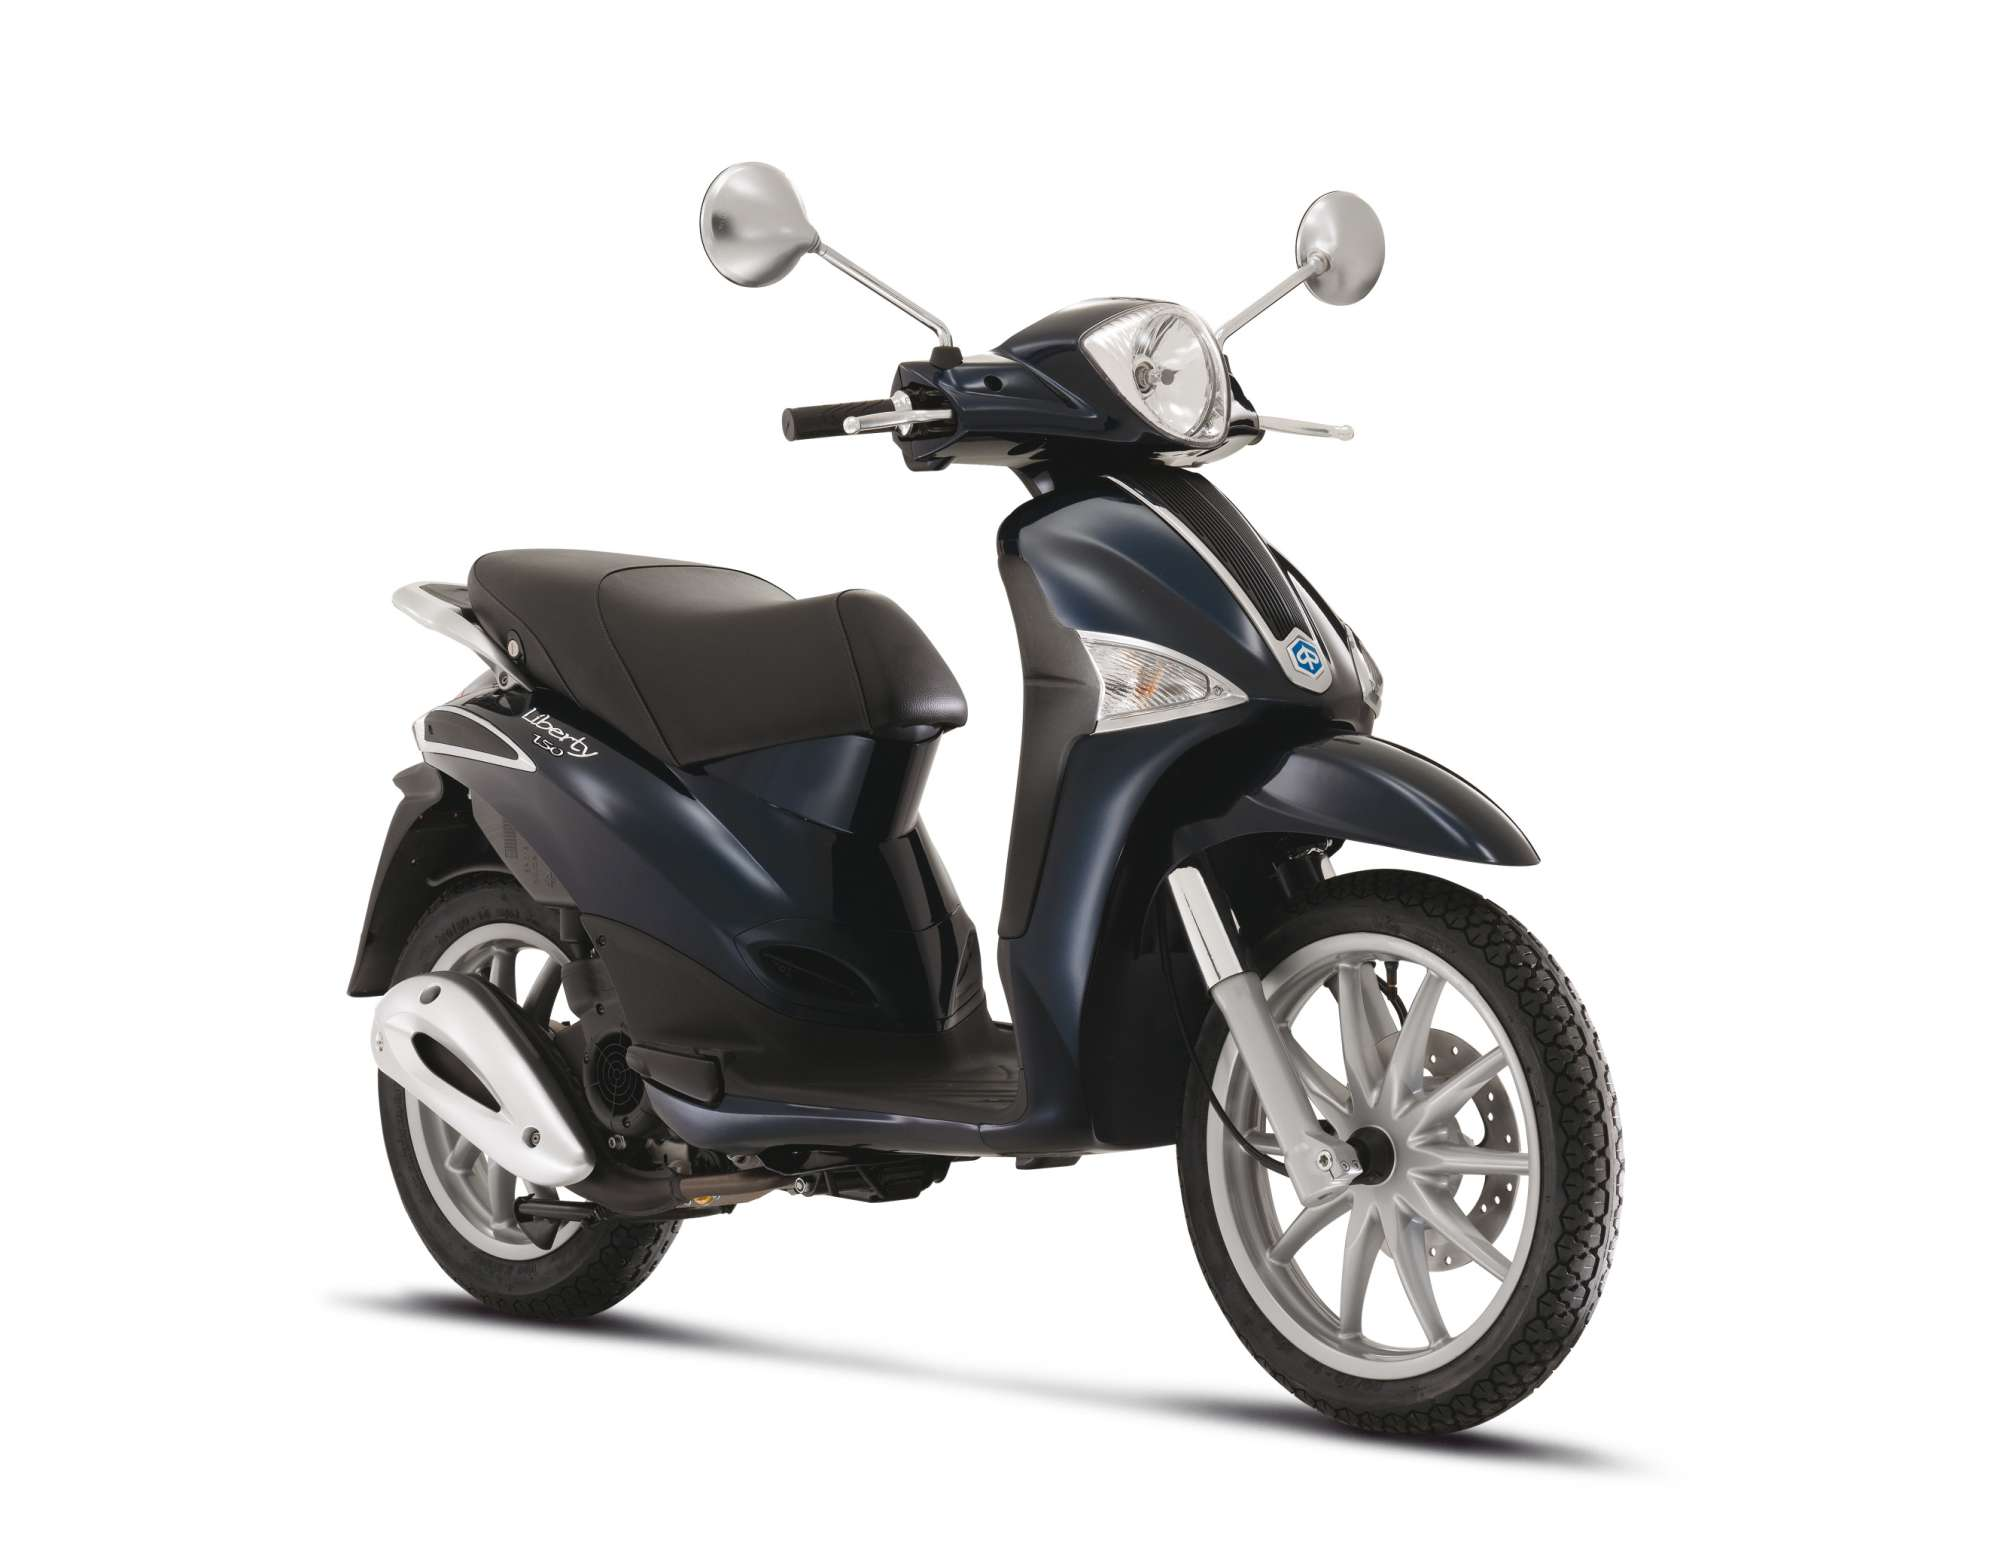 piaggio liberty 50 2t all technical data of the model. Black Bedroom Furniture Sets. Home Design Ideas